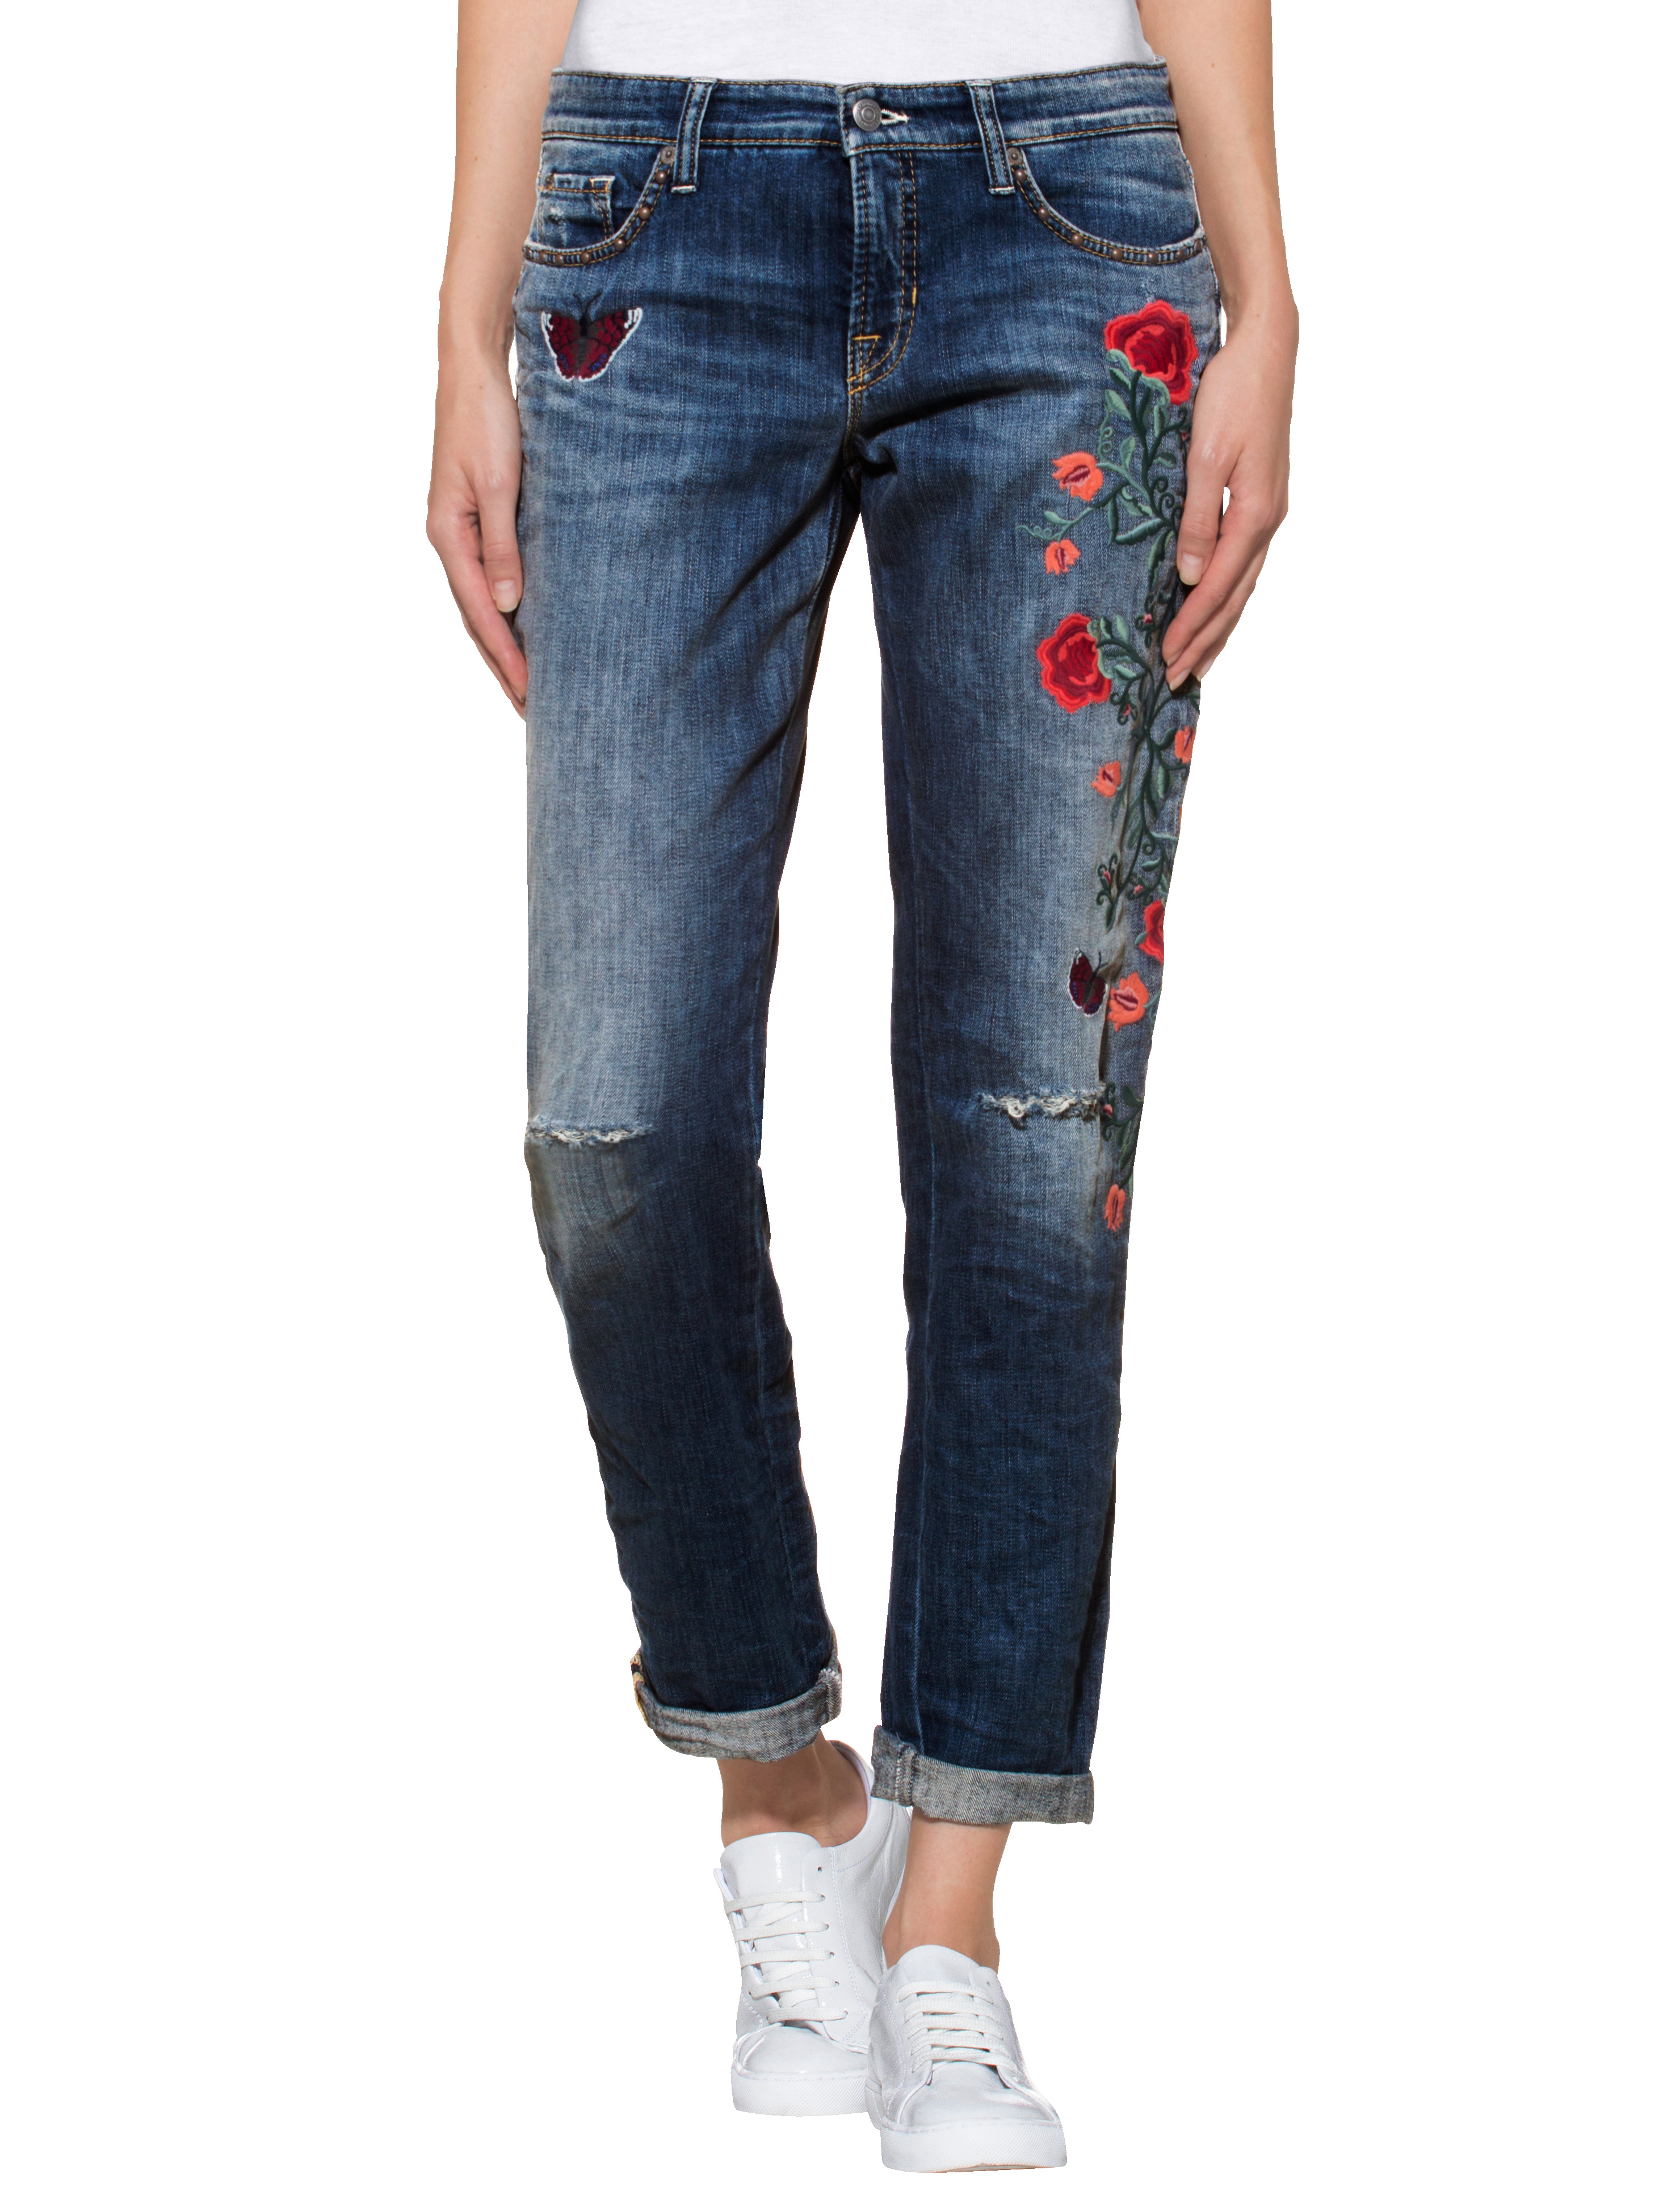 How to buy the cambio jeans? – fashionarrow.com